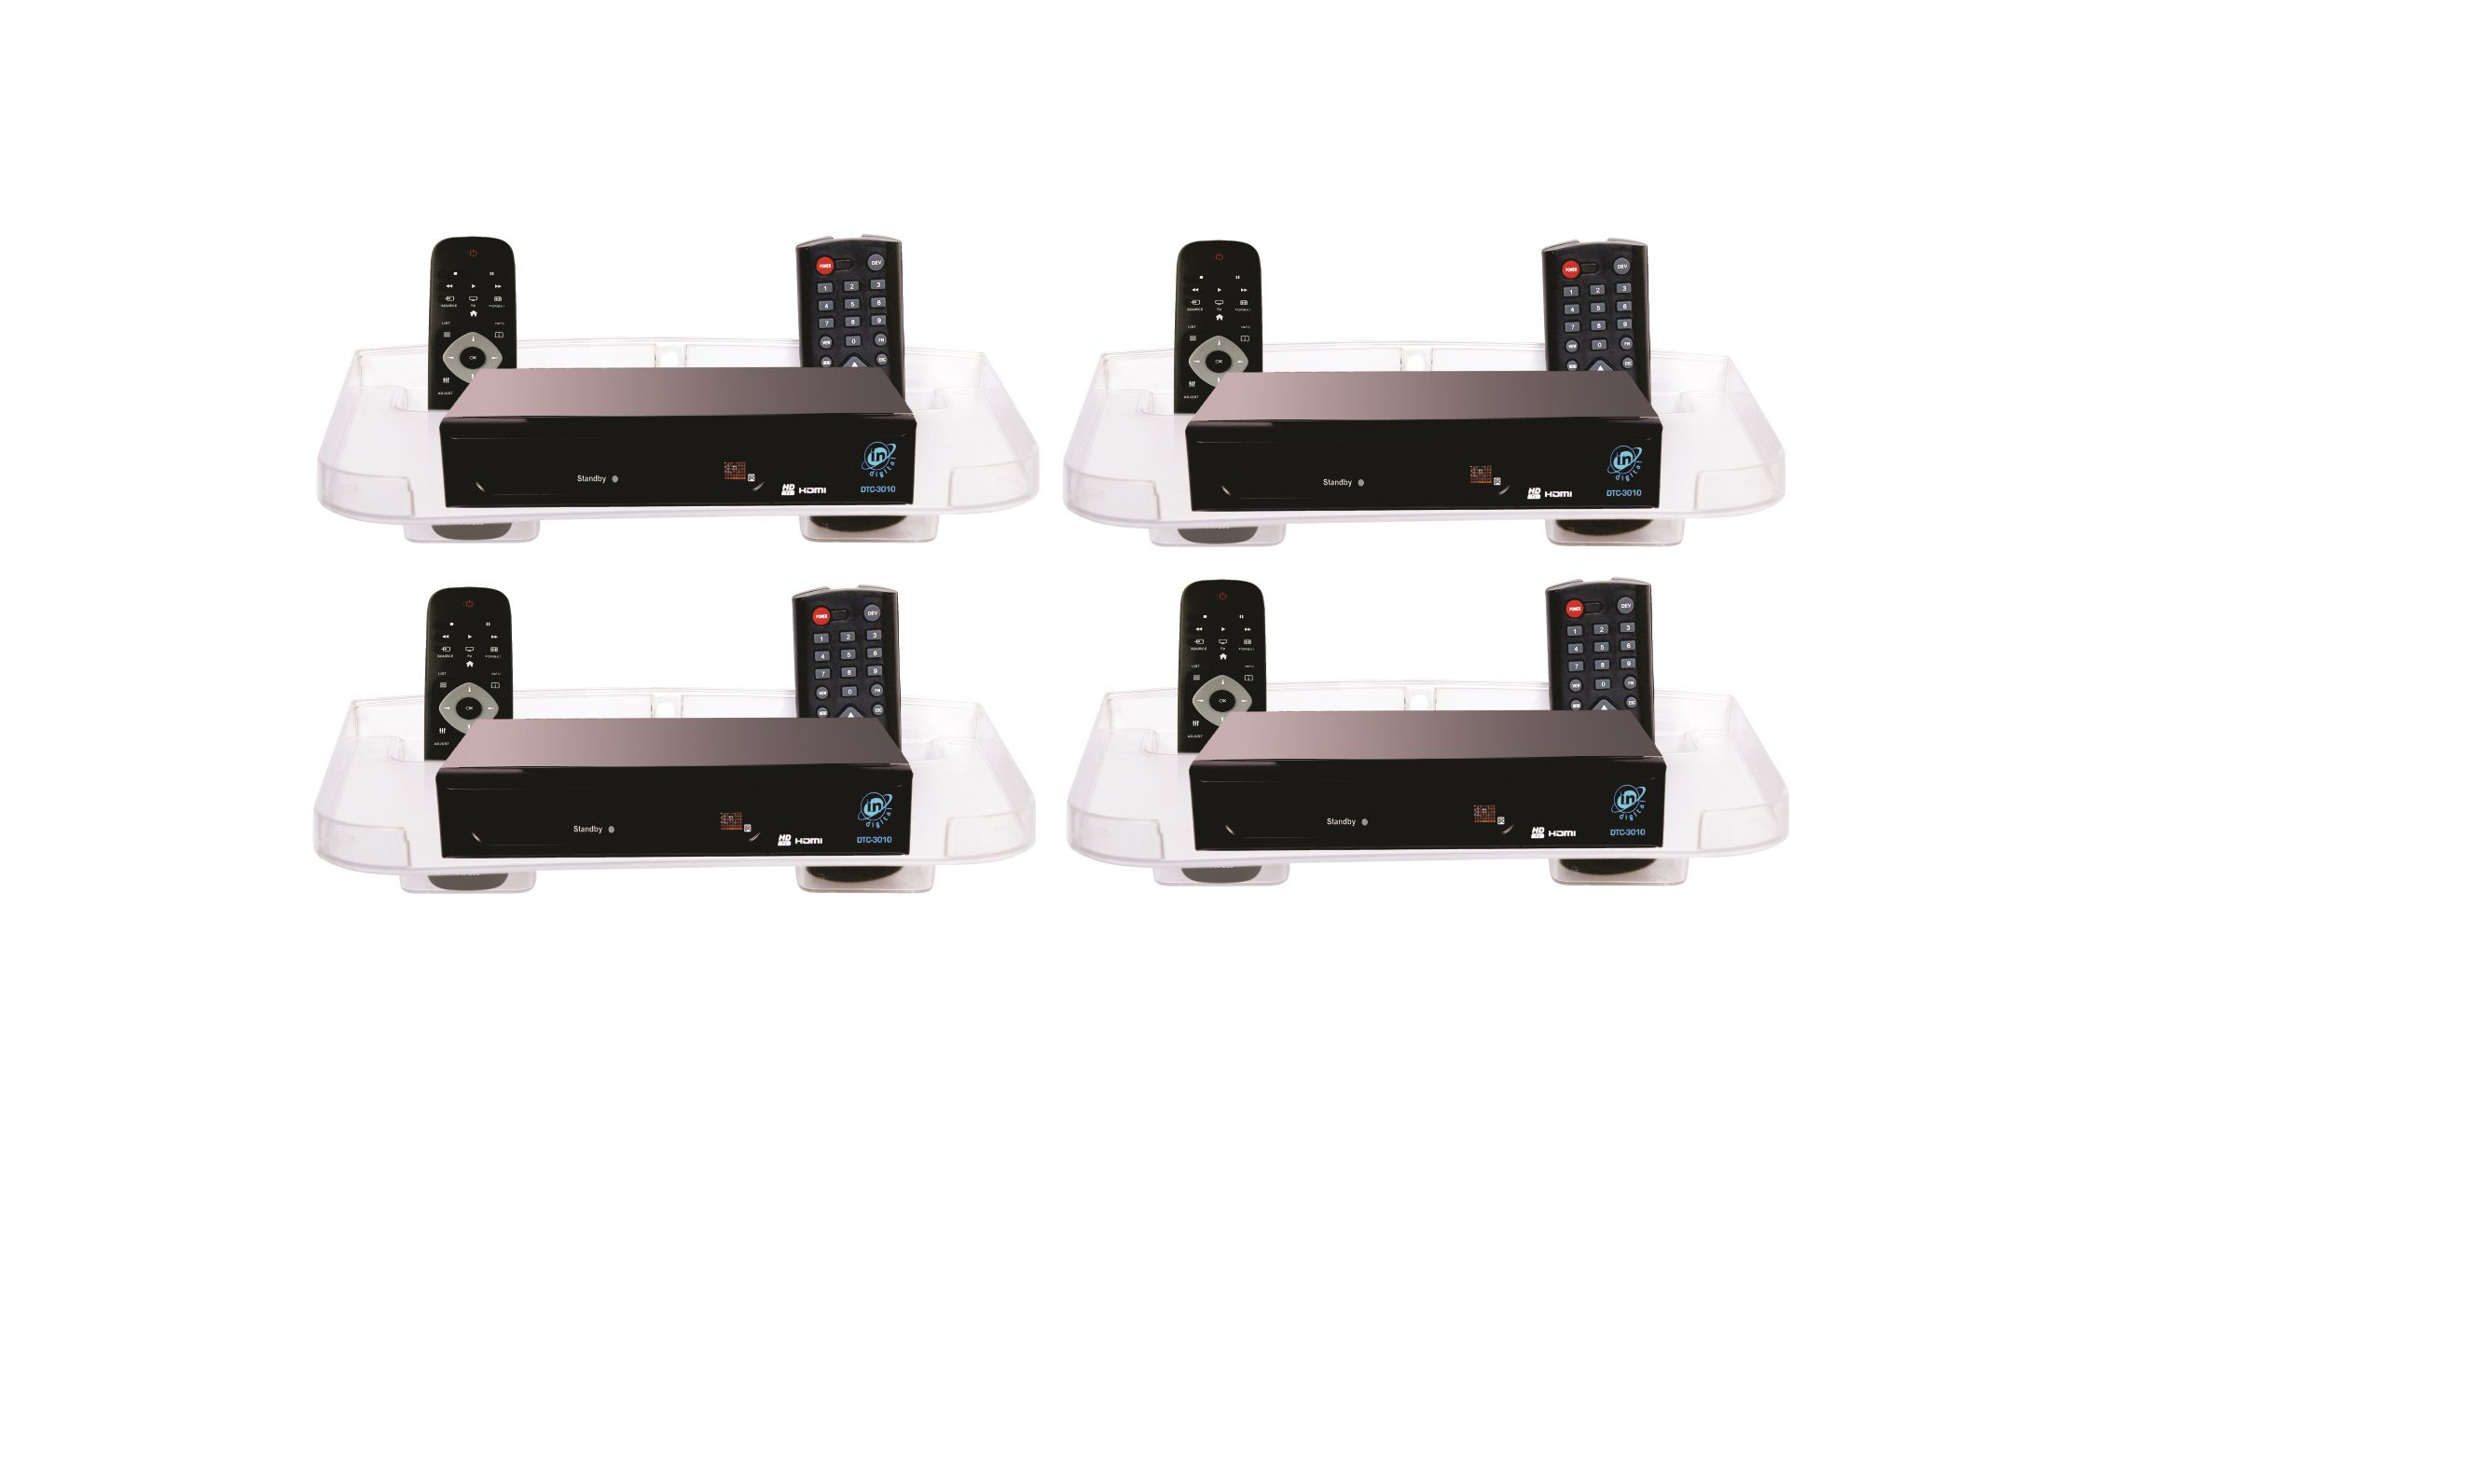 2ee059357d SSS - Set Top Box Stand set of 4 (Transparent) - Buy SSS - Set Top Box  Stand set of 4 (Transparent) Online at Best Prices in India on Snapdeal